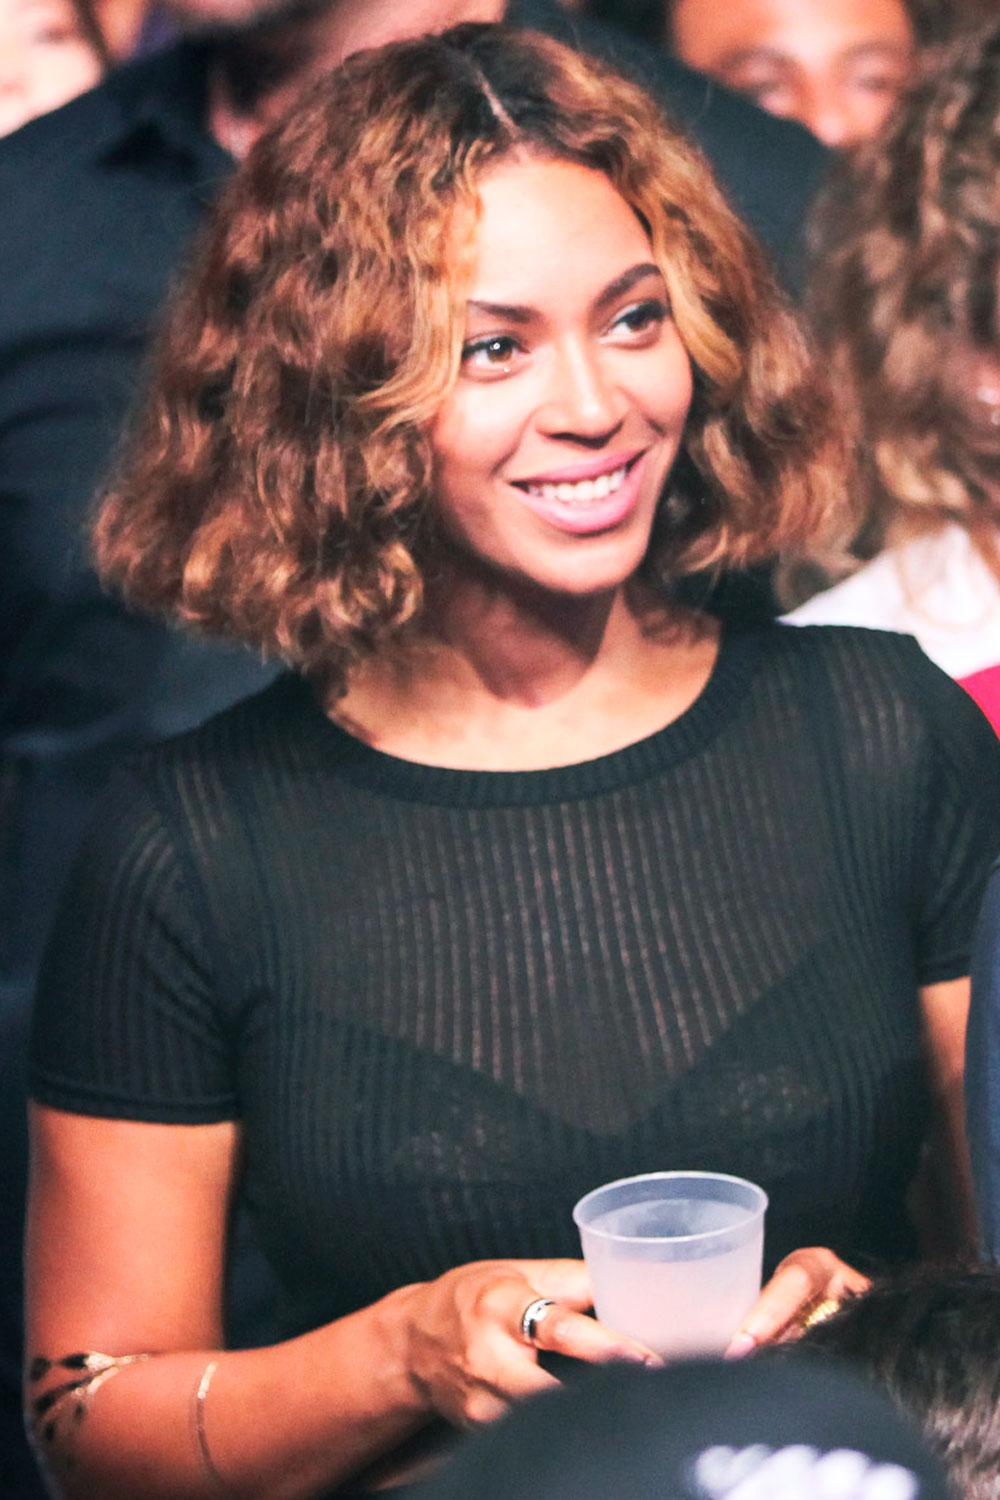 We can't get enough of @Beyonce's new laid-back bob http://t.co/ljtCxBzVwO http://t.co/bm7QgsiNVF